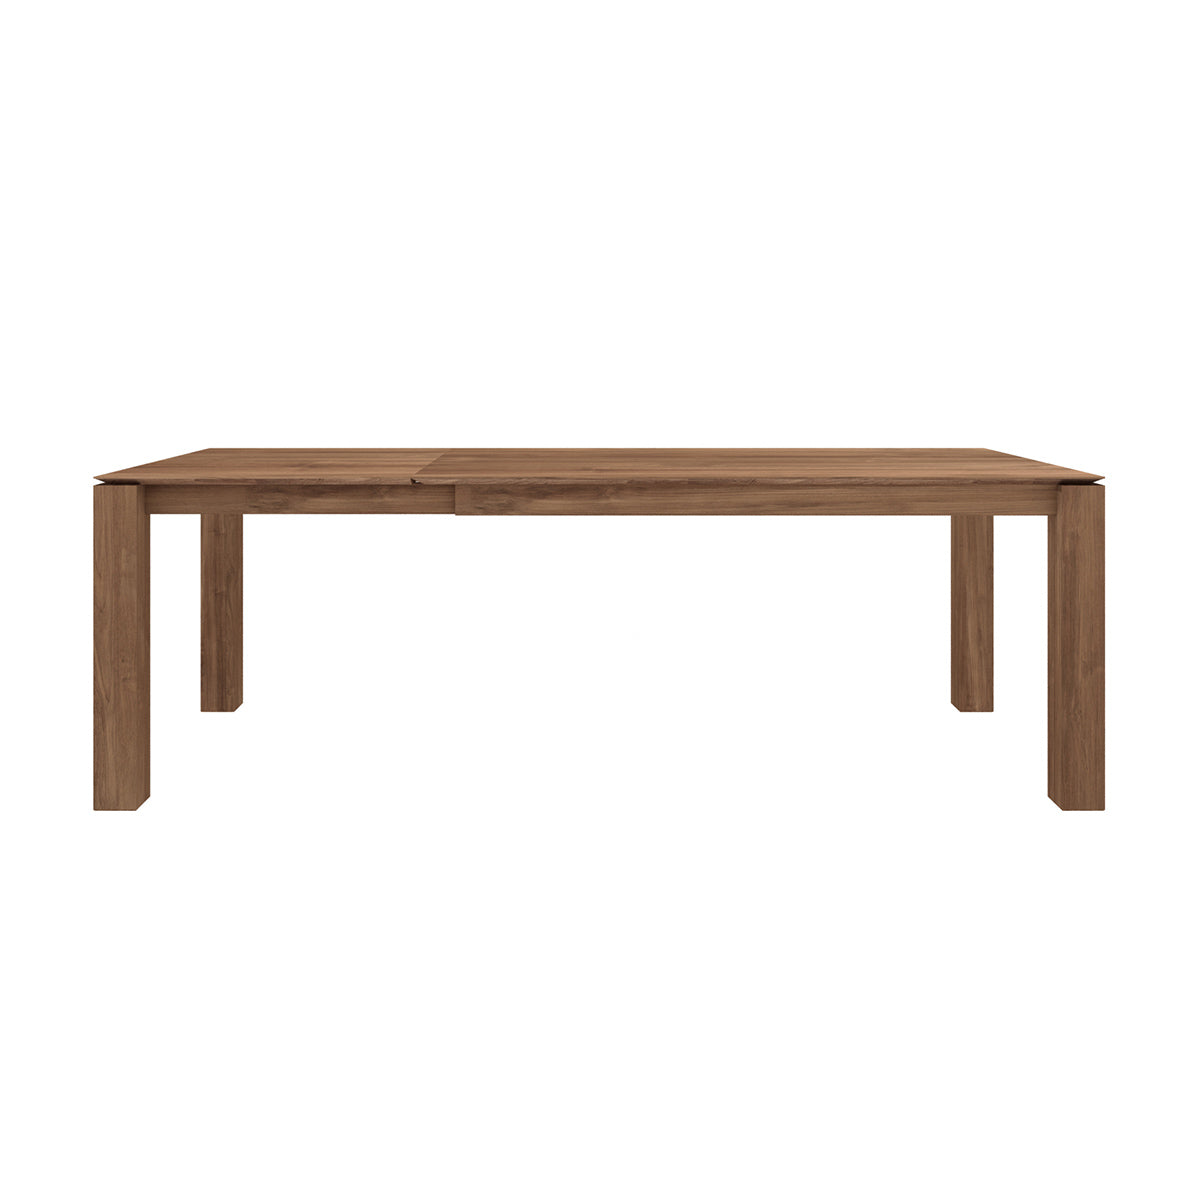 Ethnicraft Teak Slice Extension Dining Table